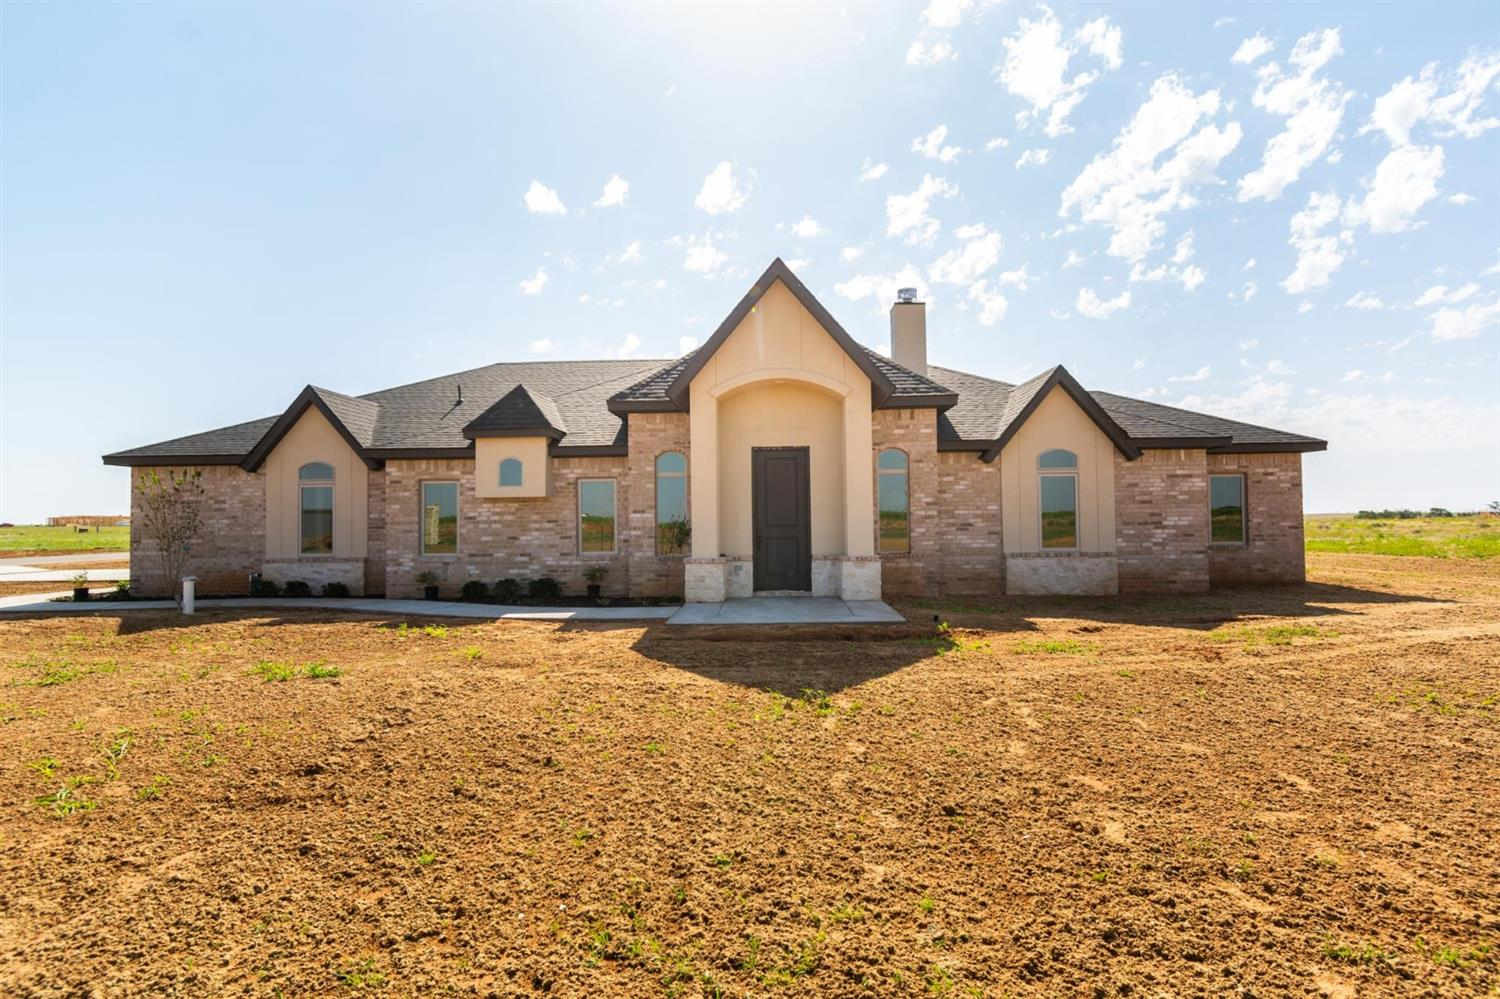 Stunning 4 Bedroom, 2 Bathroom Home in Cotton Creek! Brand New & Ready For it's Family! Located Just South of New Home High School this Home sits on Little Over an Acre with a 30x40 Shop! This Home Features: Tall Ceilings, Floating Shelves, Vinyl Plank Flooring, Open Floor Plan, Granite Counter-Tops, Gourmet Kitchen with Lots of Natural Lighting, Spacious Bedrooms, Secluded Master Retreat, Mudroom and SO MUCH MORE! Head South on SLIDE ROAD (FM 1730) TO New Home about 2 Miles Past the 4 Way Stop. Home is on the left! (EAST)